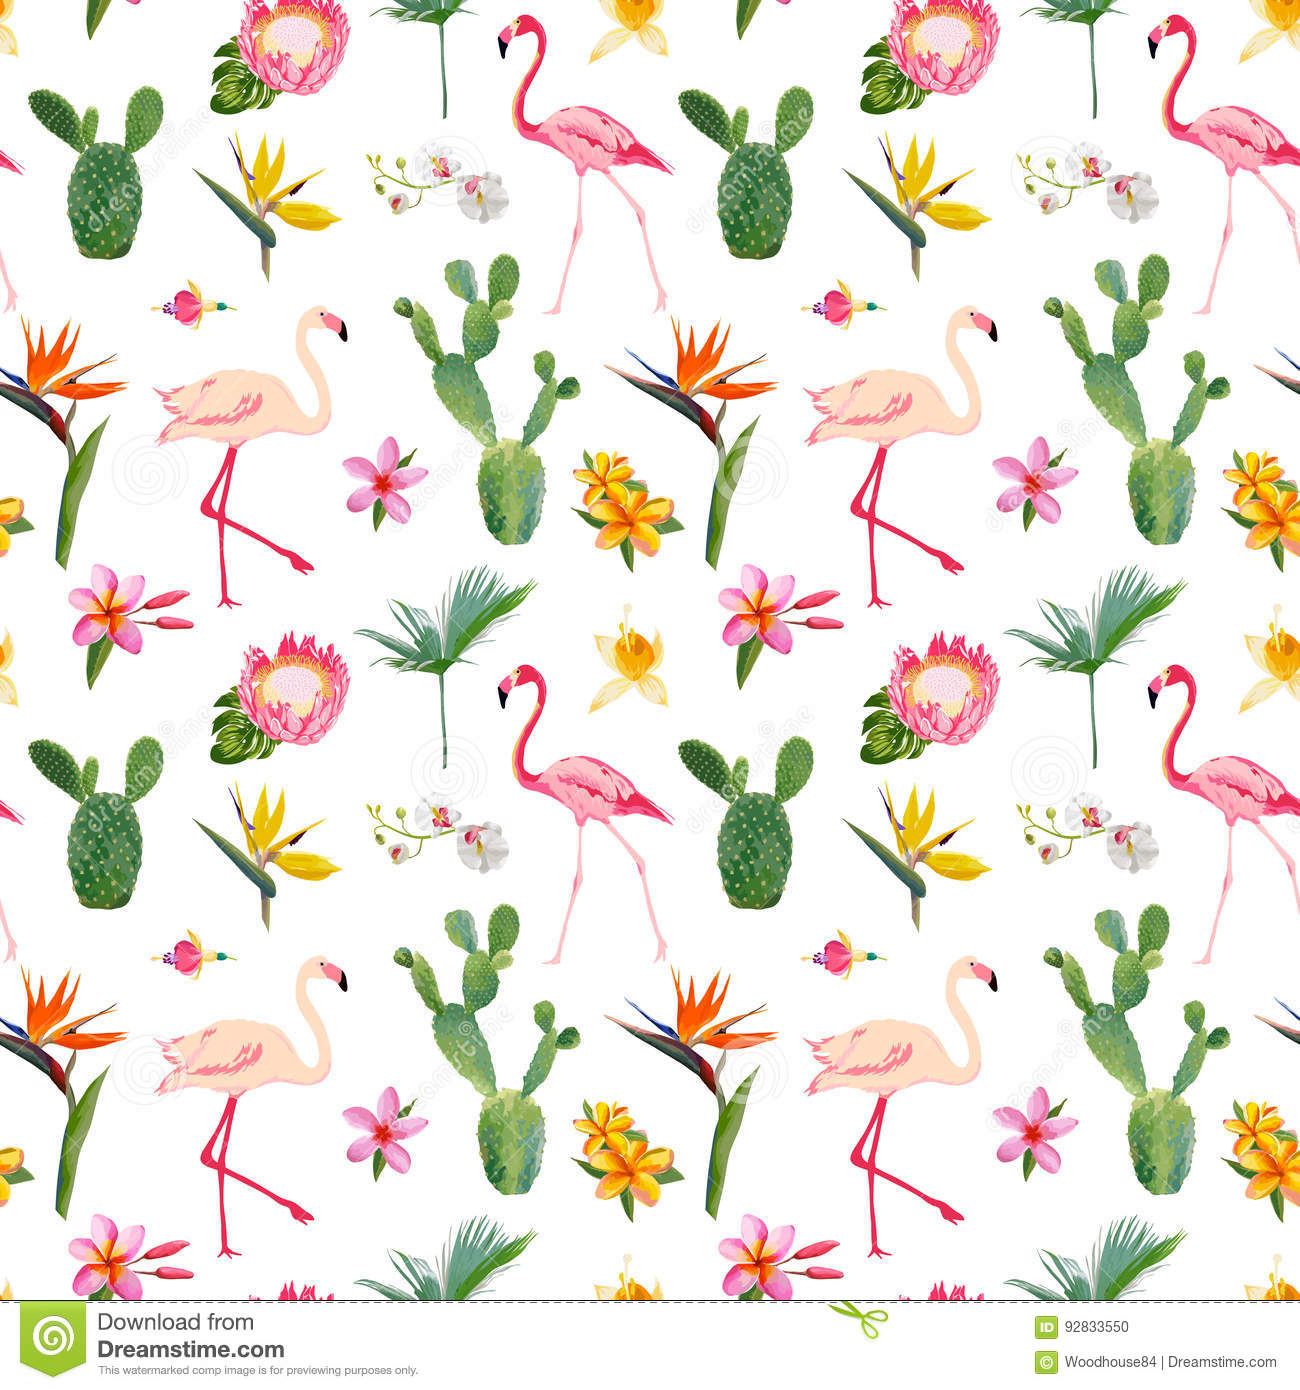 Tropical Seamless Floral Summer Pattern For Wallpapers